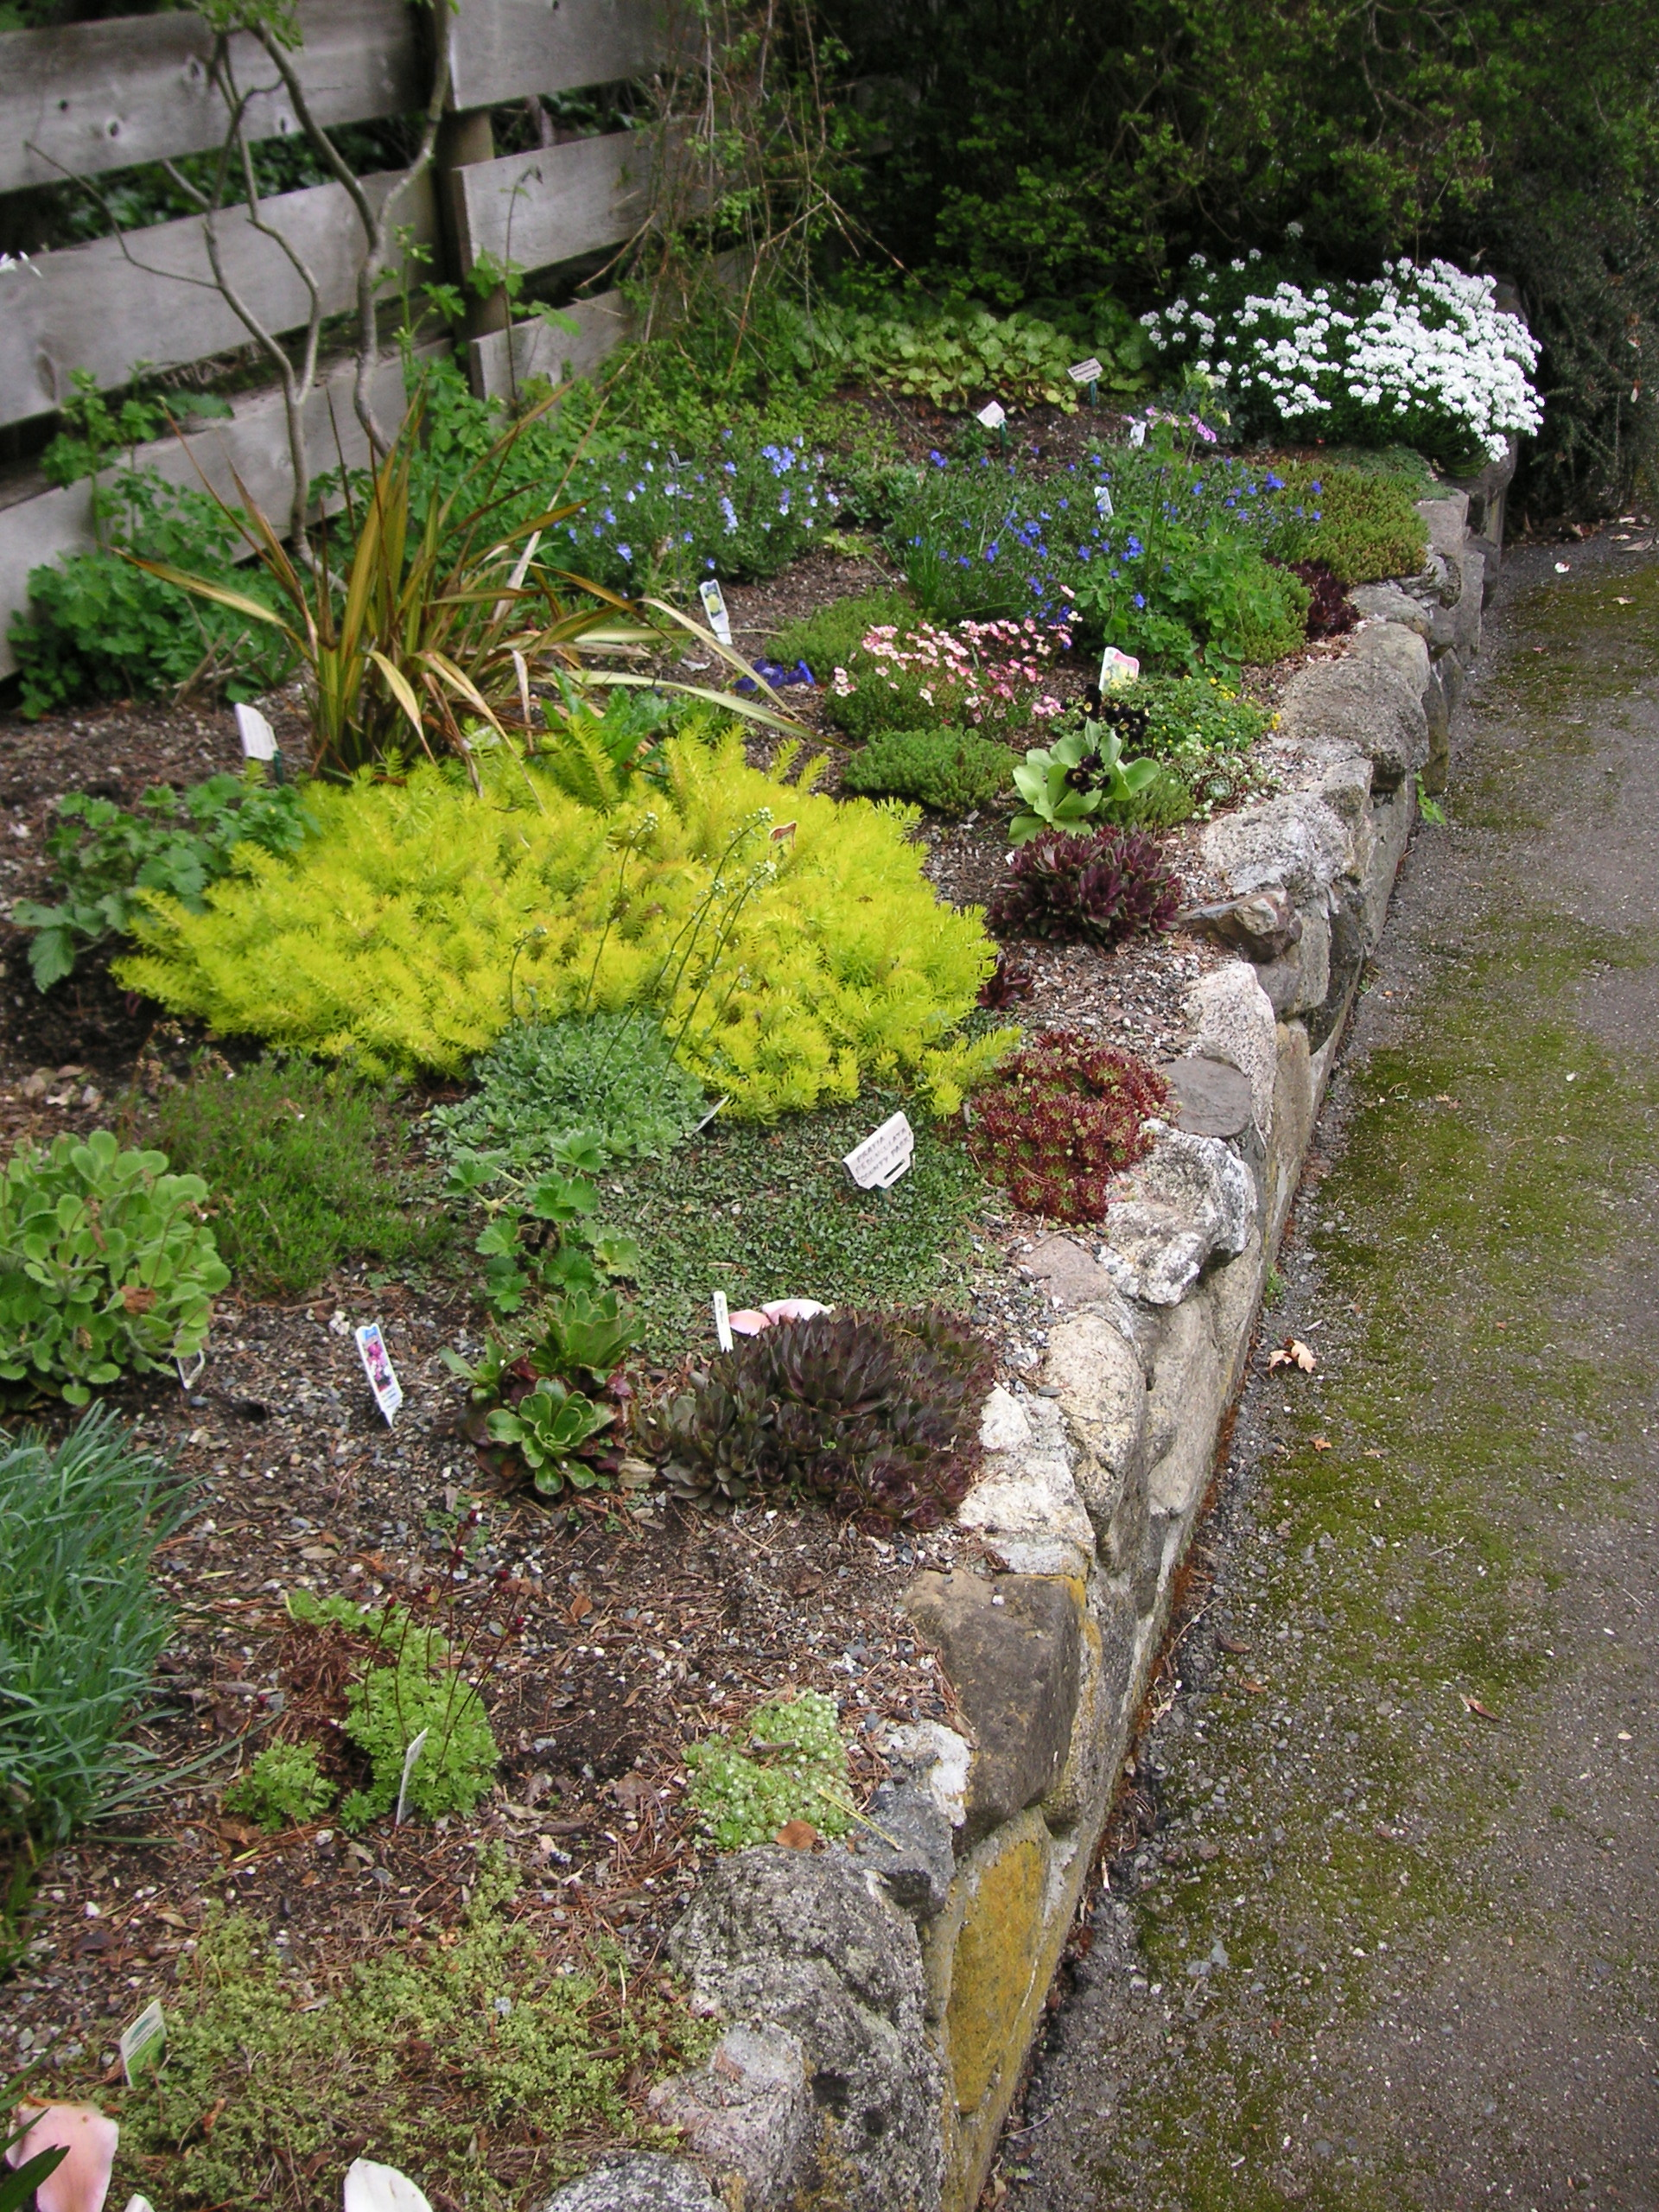 Superior Have You Ever Wanted To Build A Rock Garden? They Are Easy To Create But  Need A Lot Of Brute Strength To Move The Rocks So Invite Plenty Of Friends  To The ... Nice Look